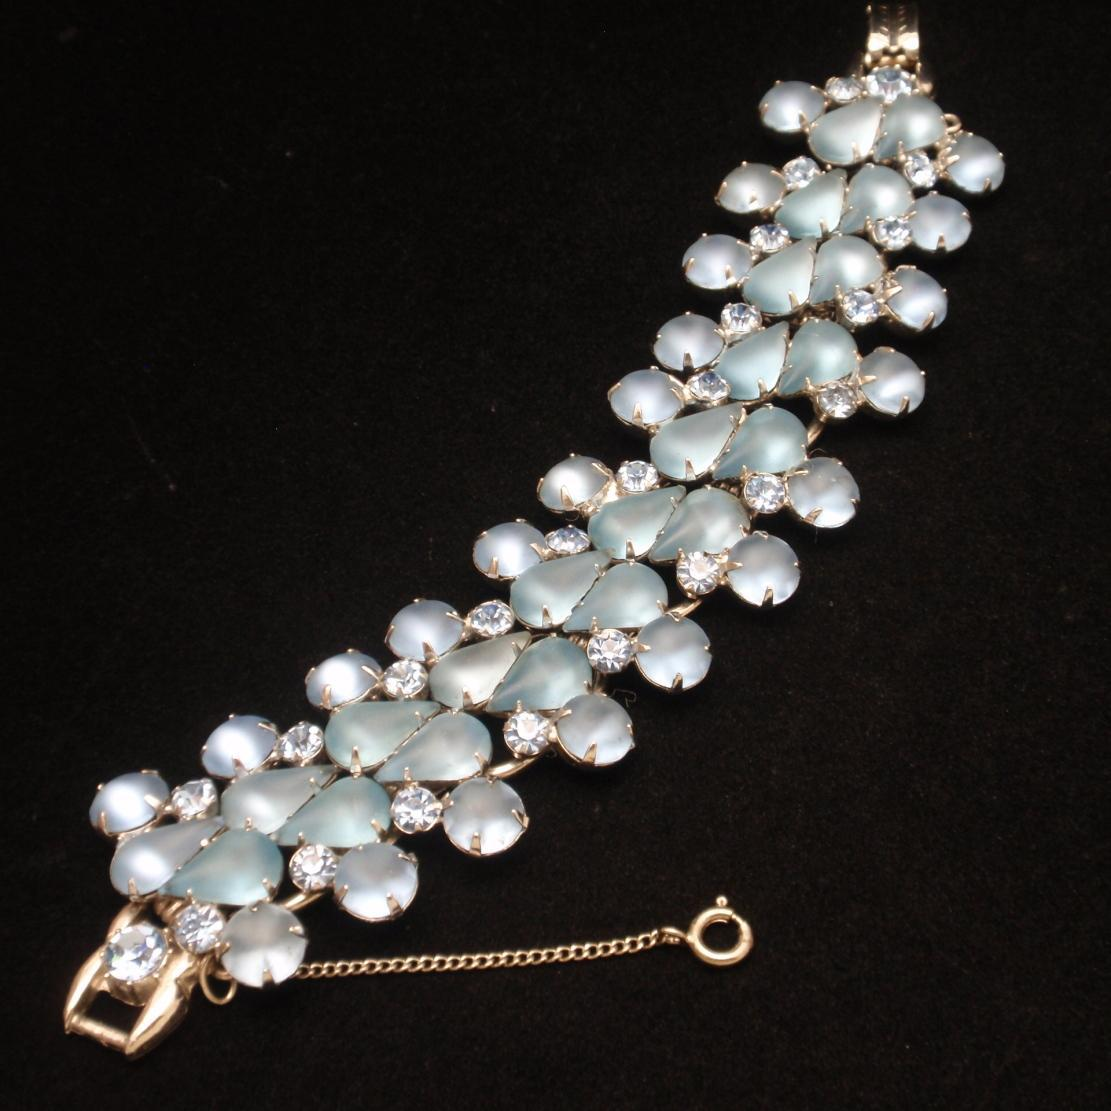 Blue Juliana D&E Vintage Bracelet